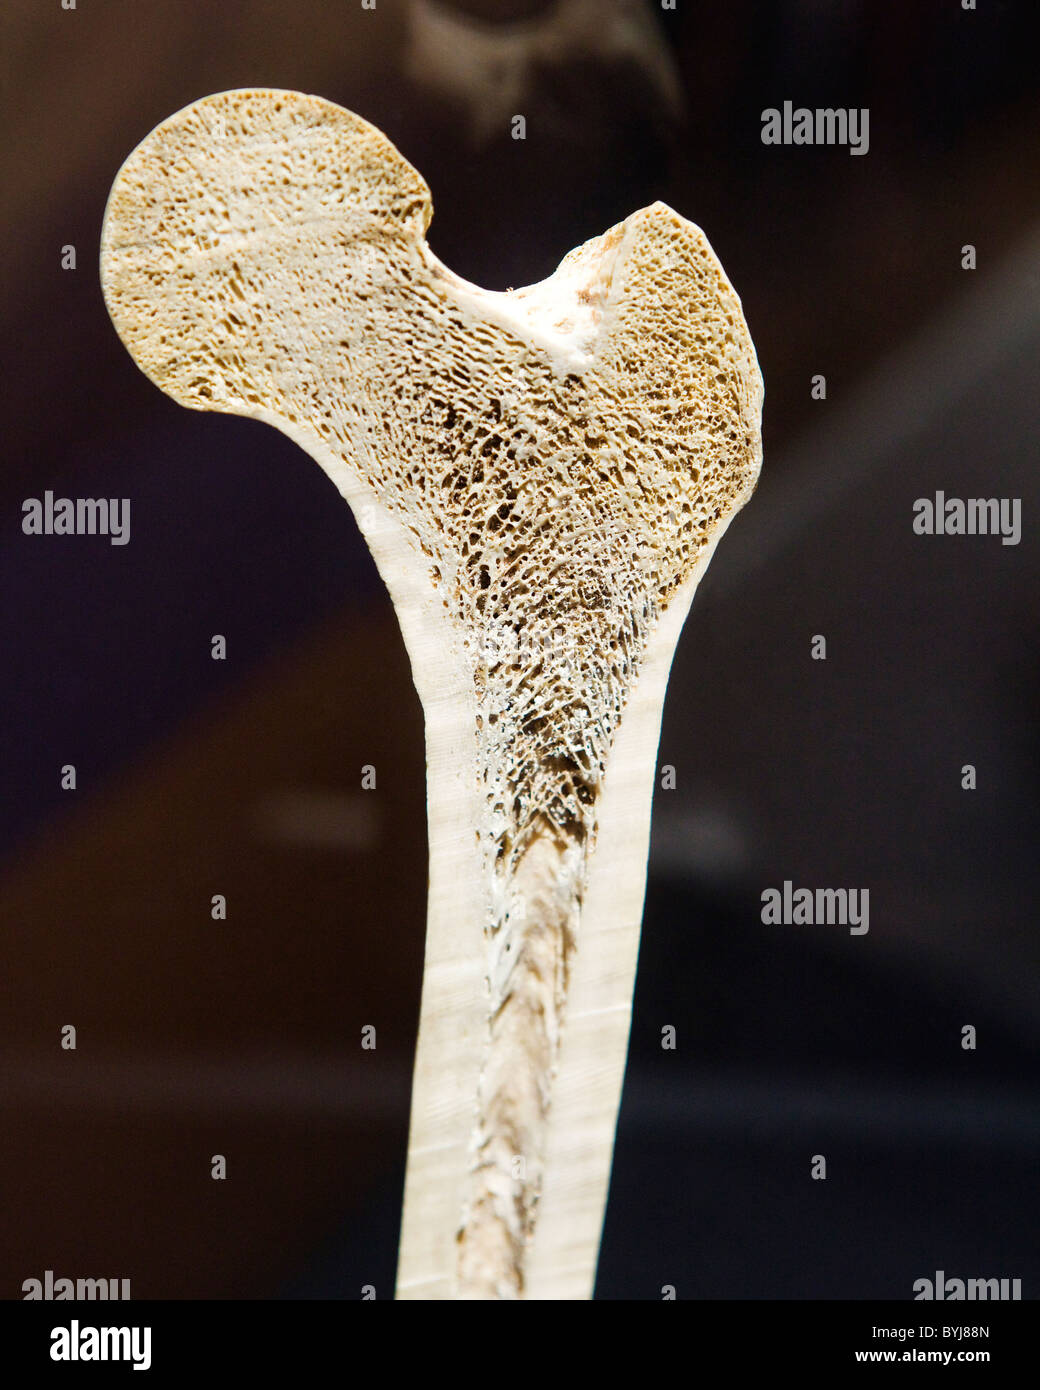 Cross Section View Of A Human Femur Bone Showing Trabecula